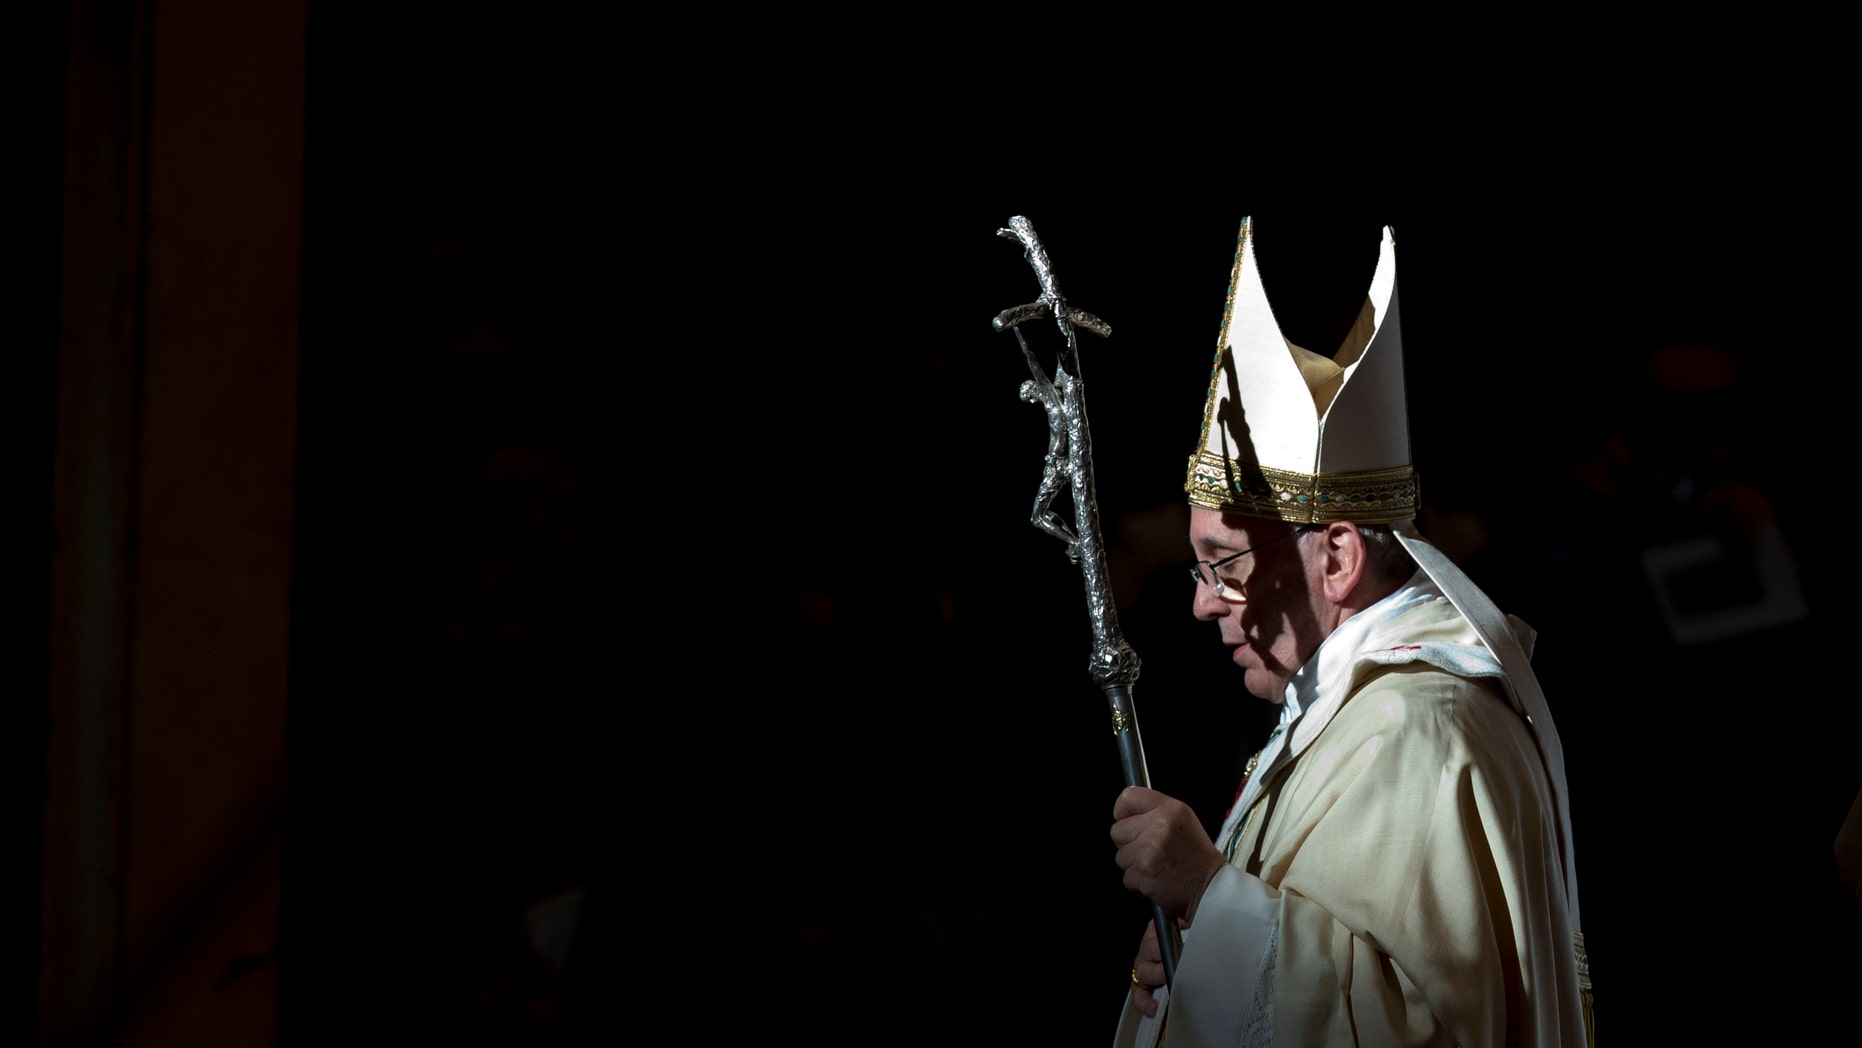 Pope Francis holds the pastoral staff as he leaves after celebrating a Mass in St. Peter's Basilica, at the Vatican, to mark Epiphany, Monday, Jan. 6, 2014. The Epiphany day, is a joyous day for Catholics in which they recall the journey of the Three Kings, or Magi, to pay homage to Baby Jesus. (AP Photo/Andrew Medichini)